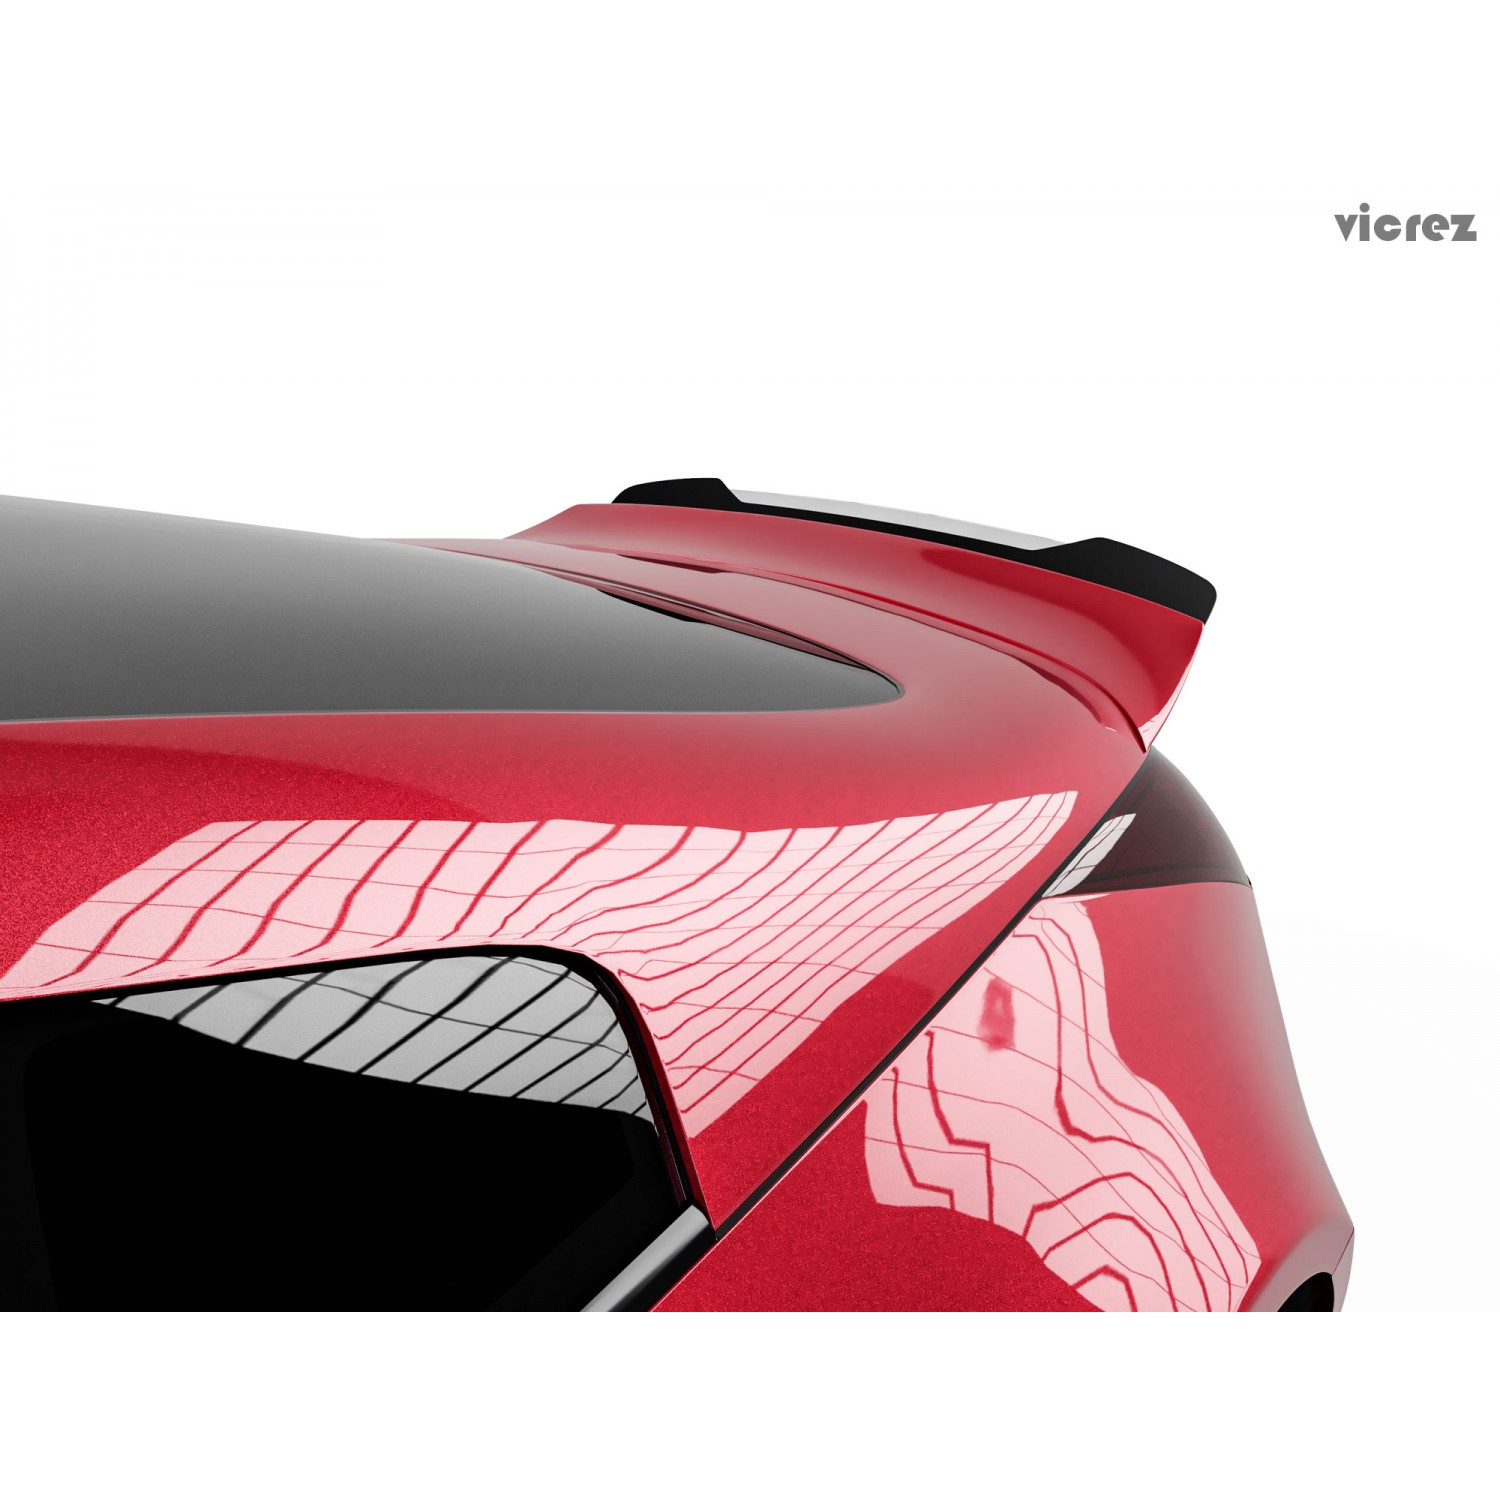 Vicrez Wicker Bill Add-on V3R vz101401 for Ducktail Wing Spoiler | Nissan 350z 2003-2008